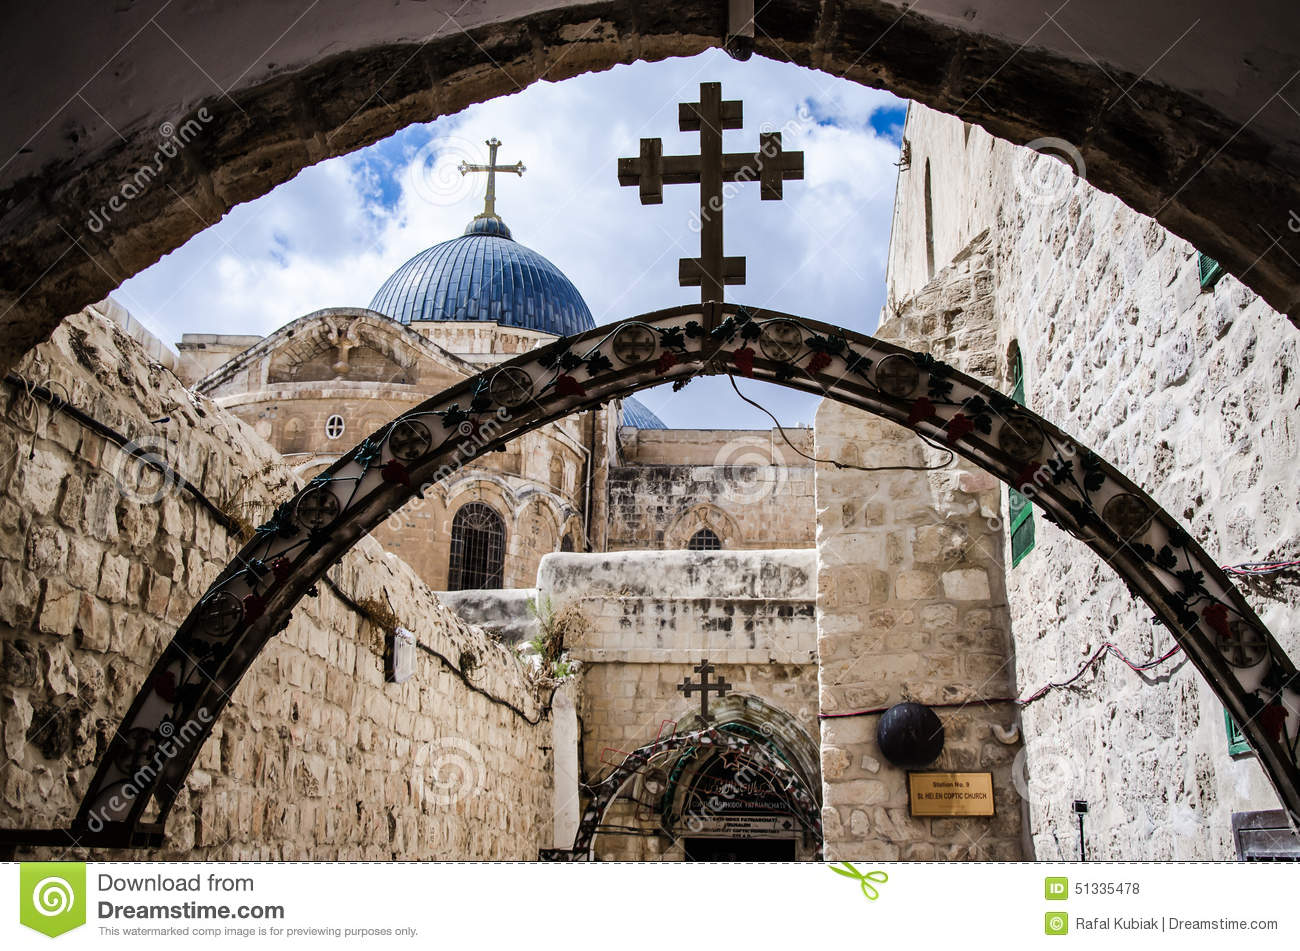 Via Dolorosa Jerusalem, Via Dolorosa, Jerusalem Stock Photo - Image: 51335478